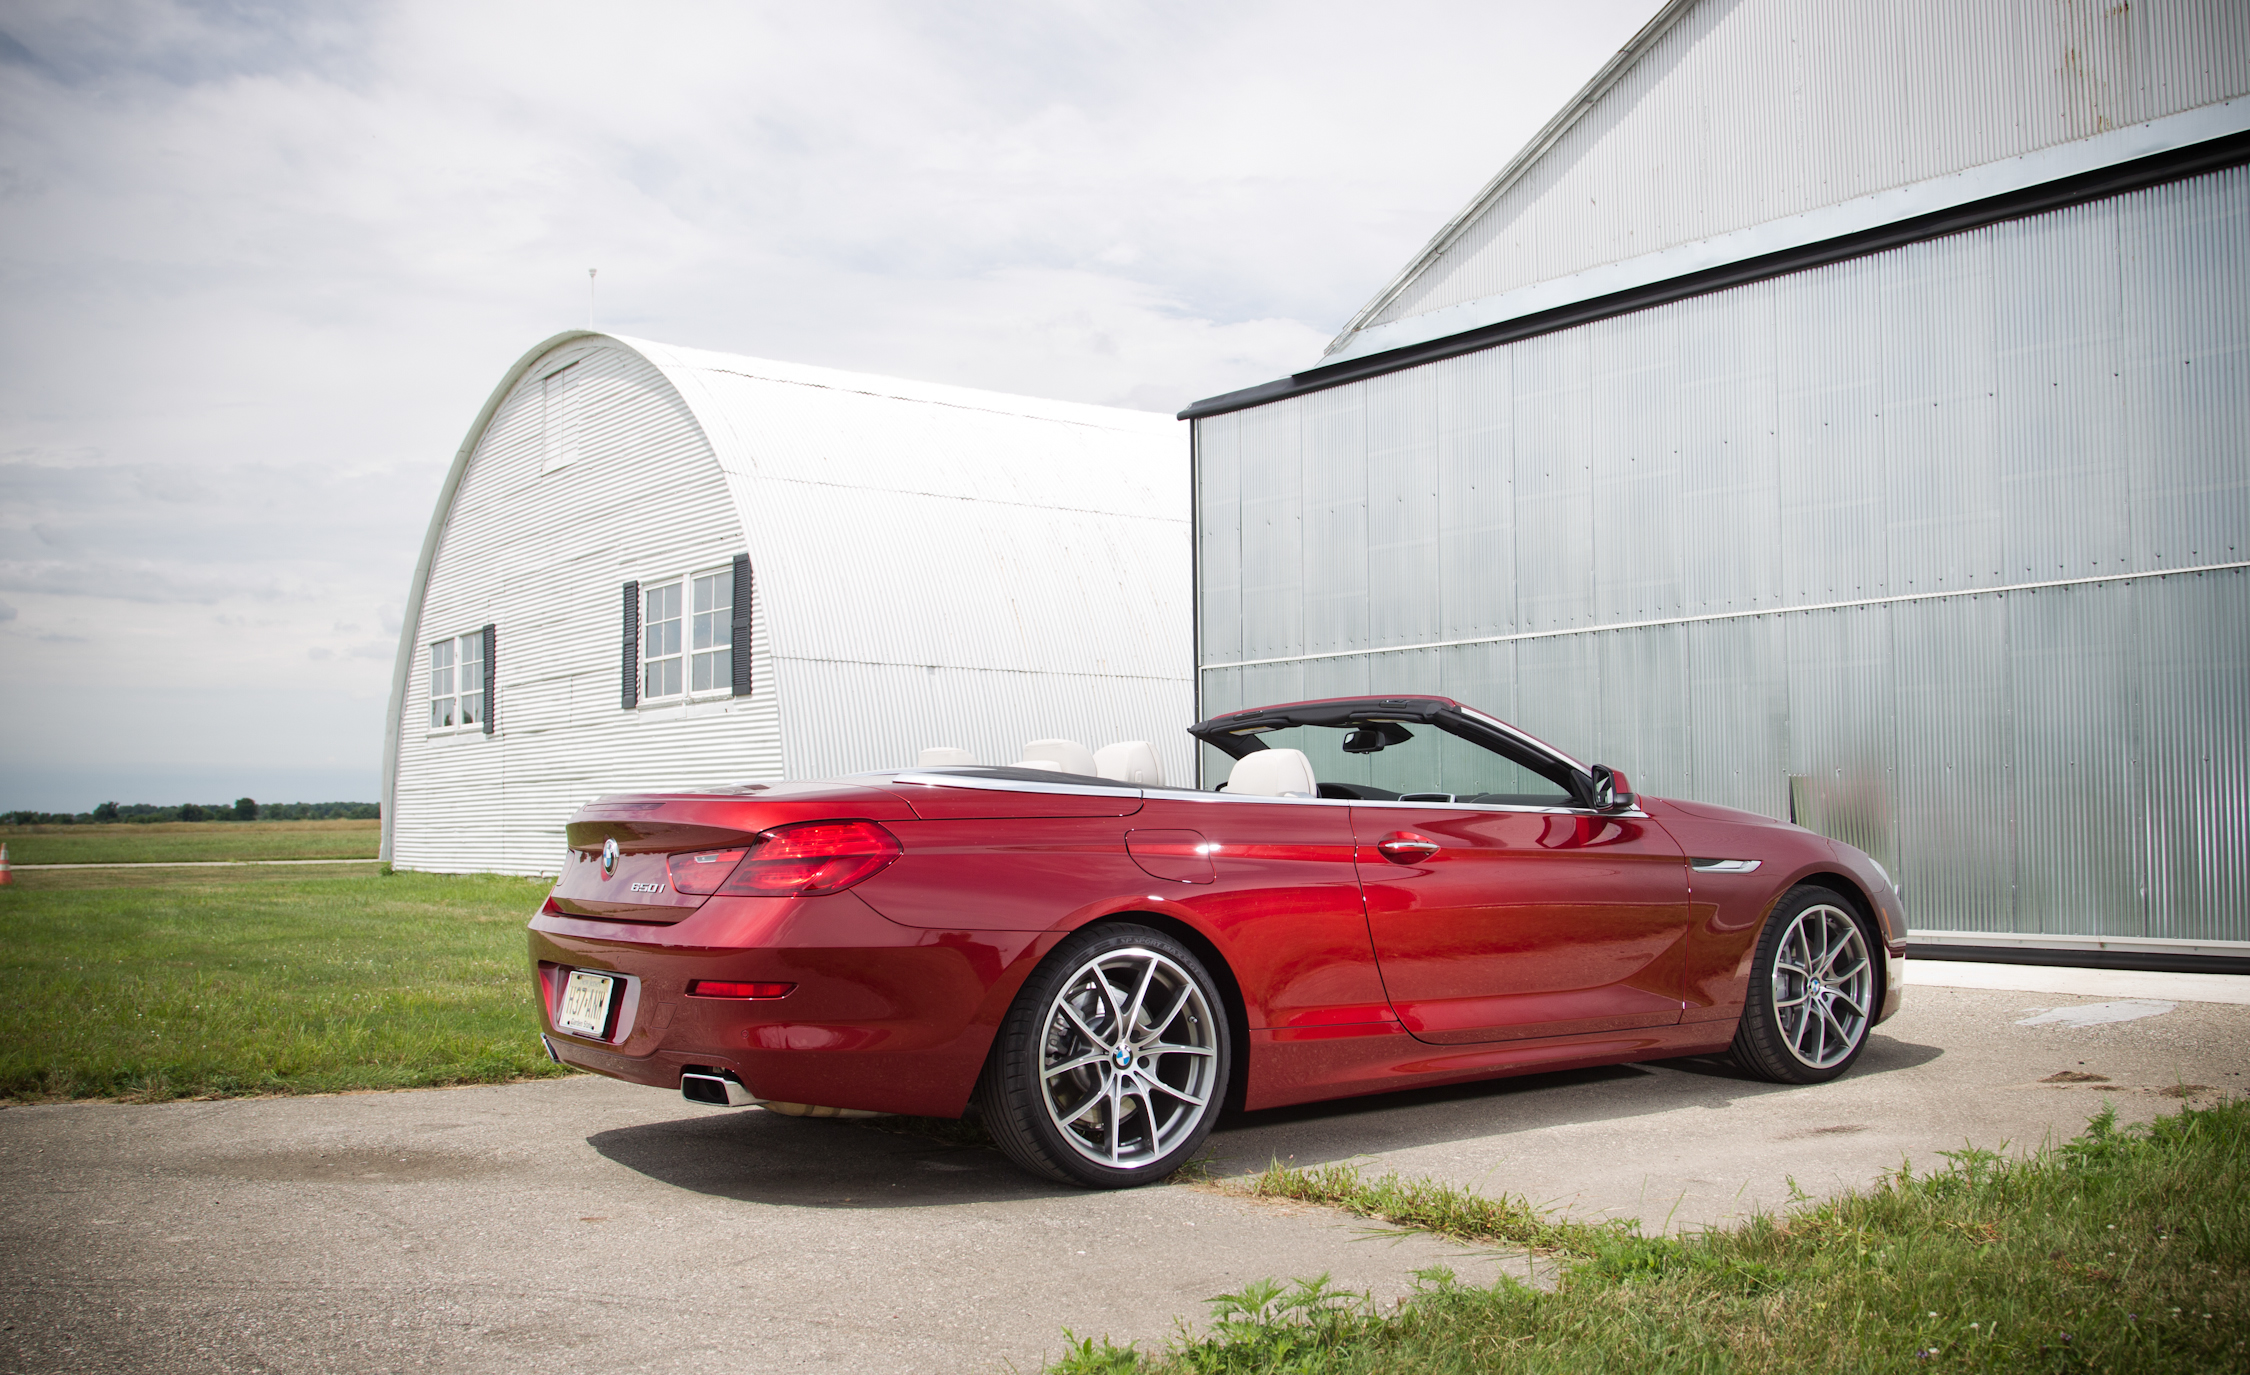 2012 BMW 650i Convertible Exterior Side And Rear (Photo 6 of 19)